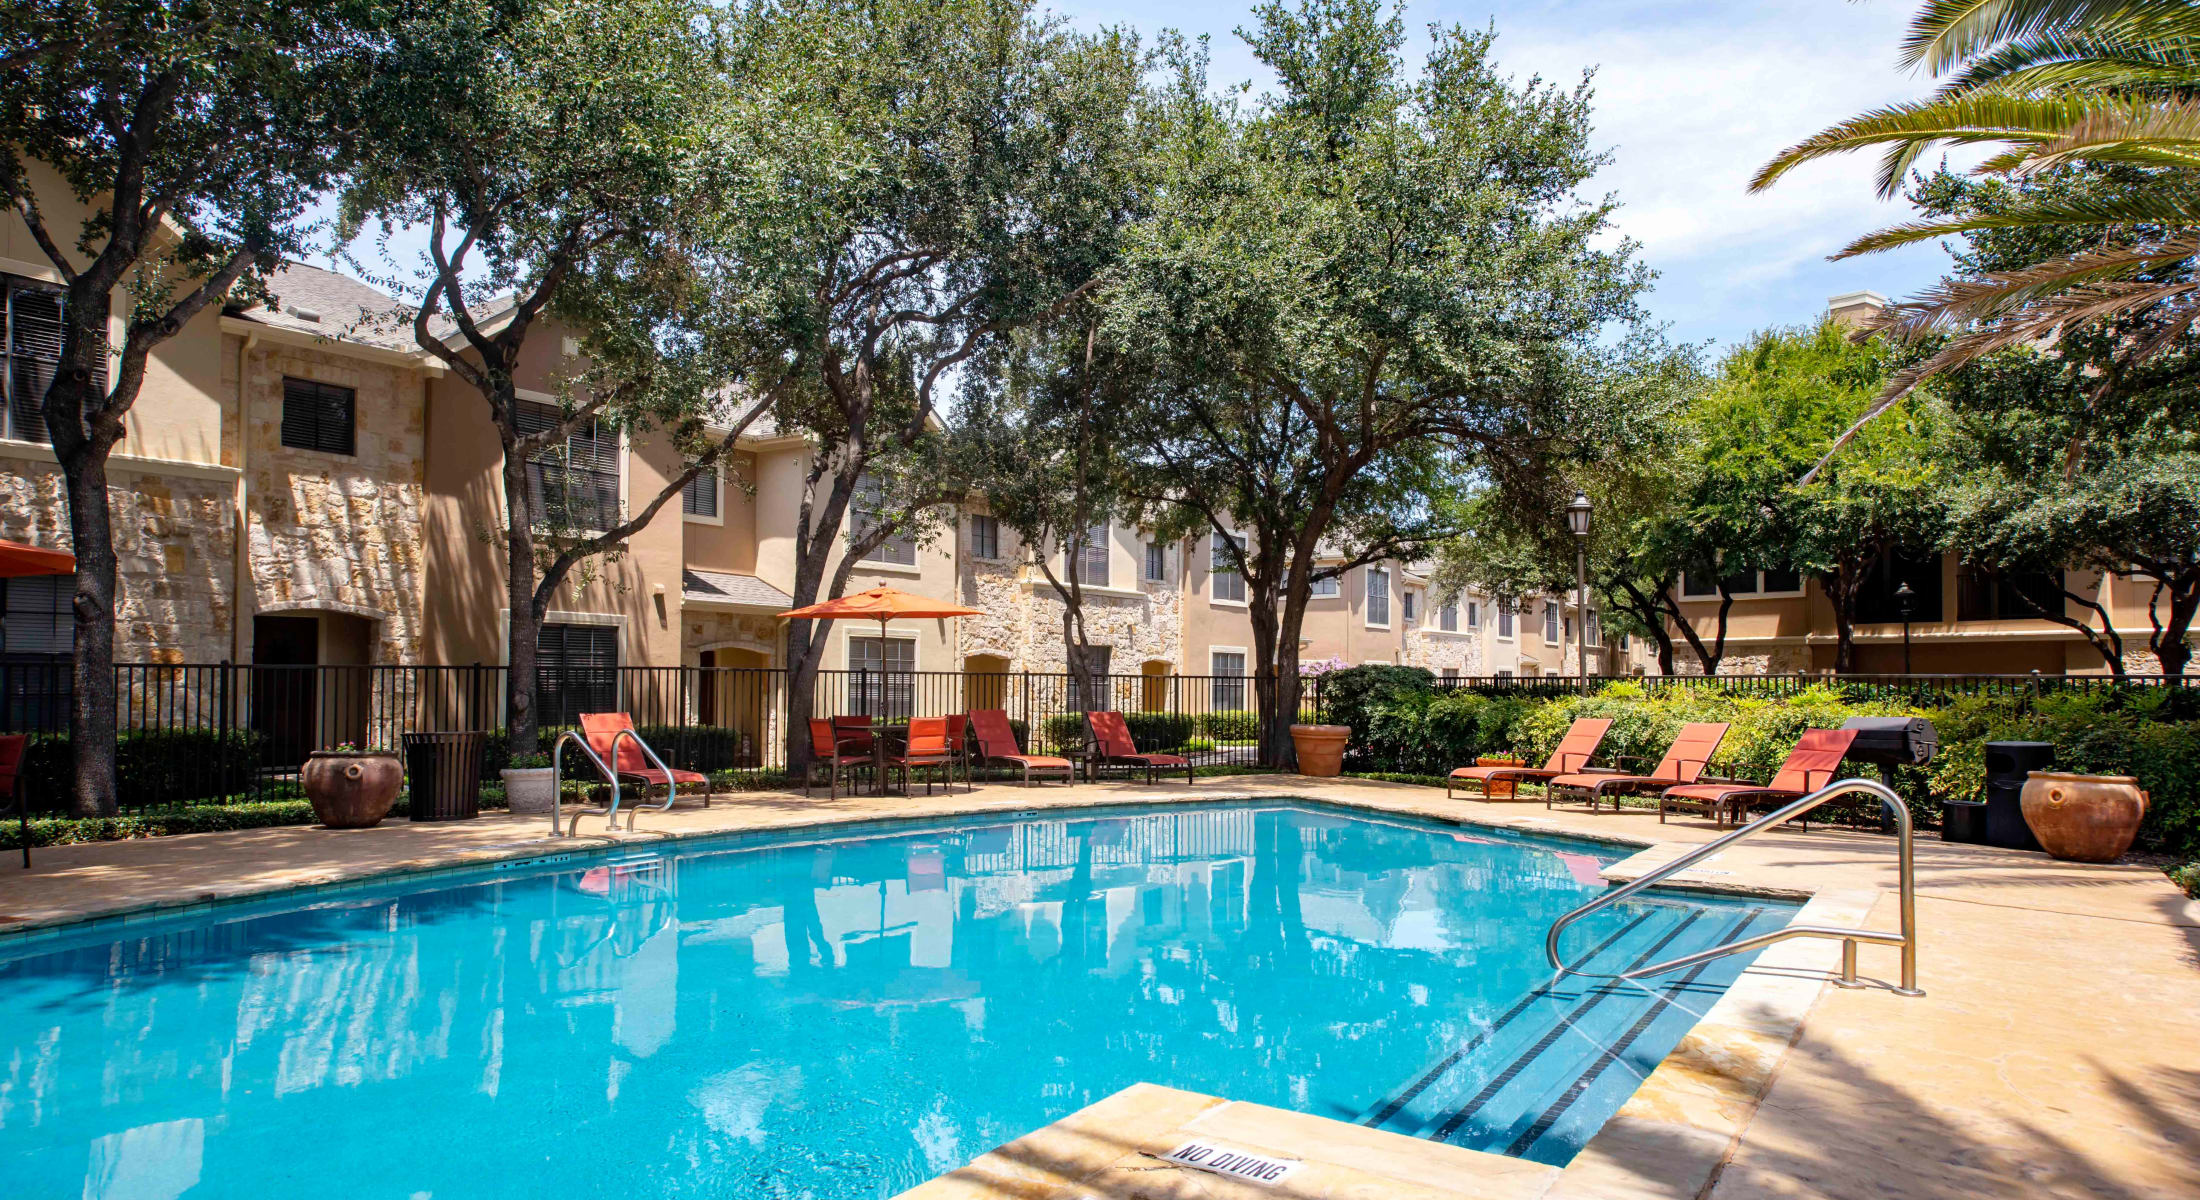 Outdoor Swimming Pool at The Quarry Townhomes